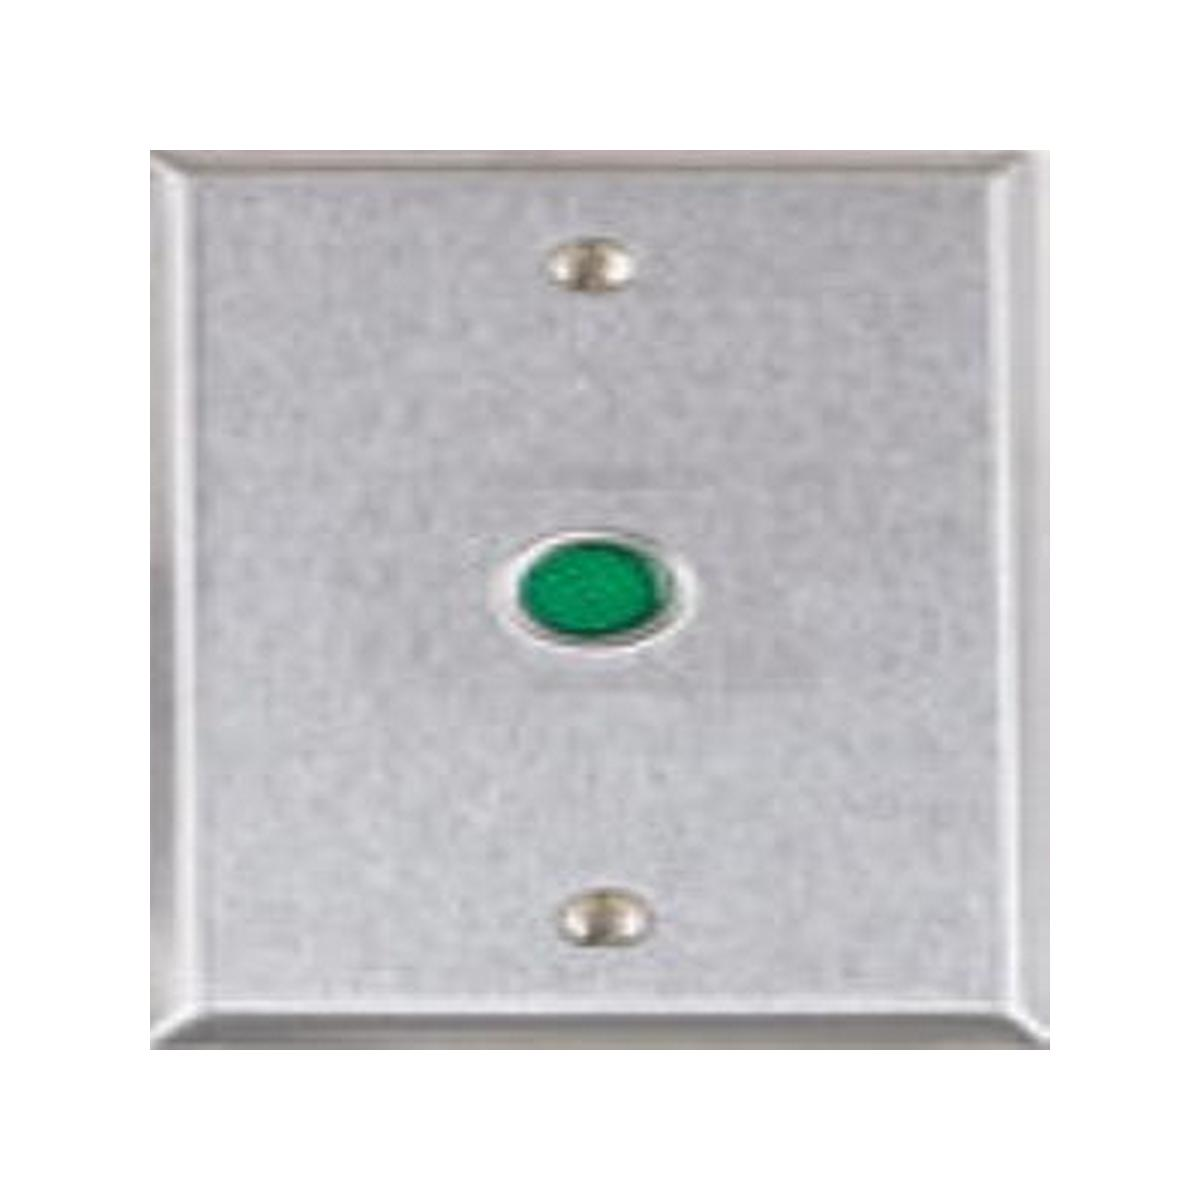 Alarm Controls RP-29L Single gang  Remote station plate, 1/2